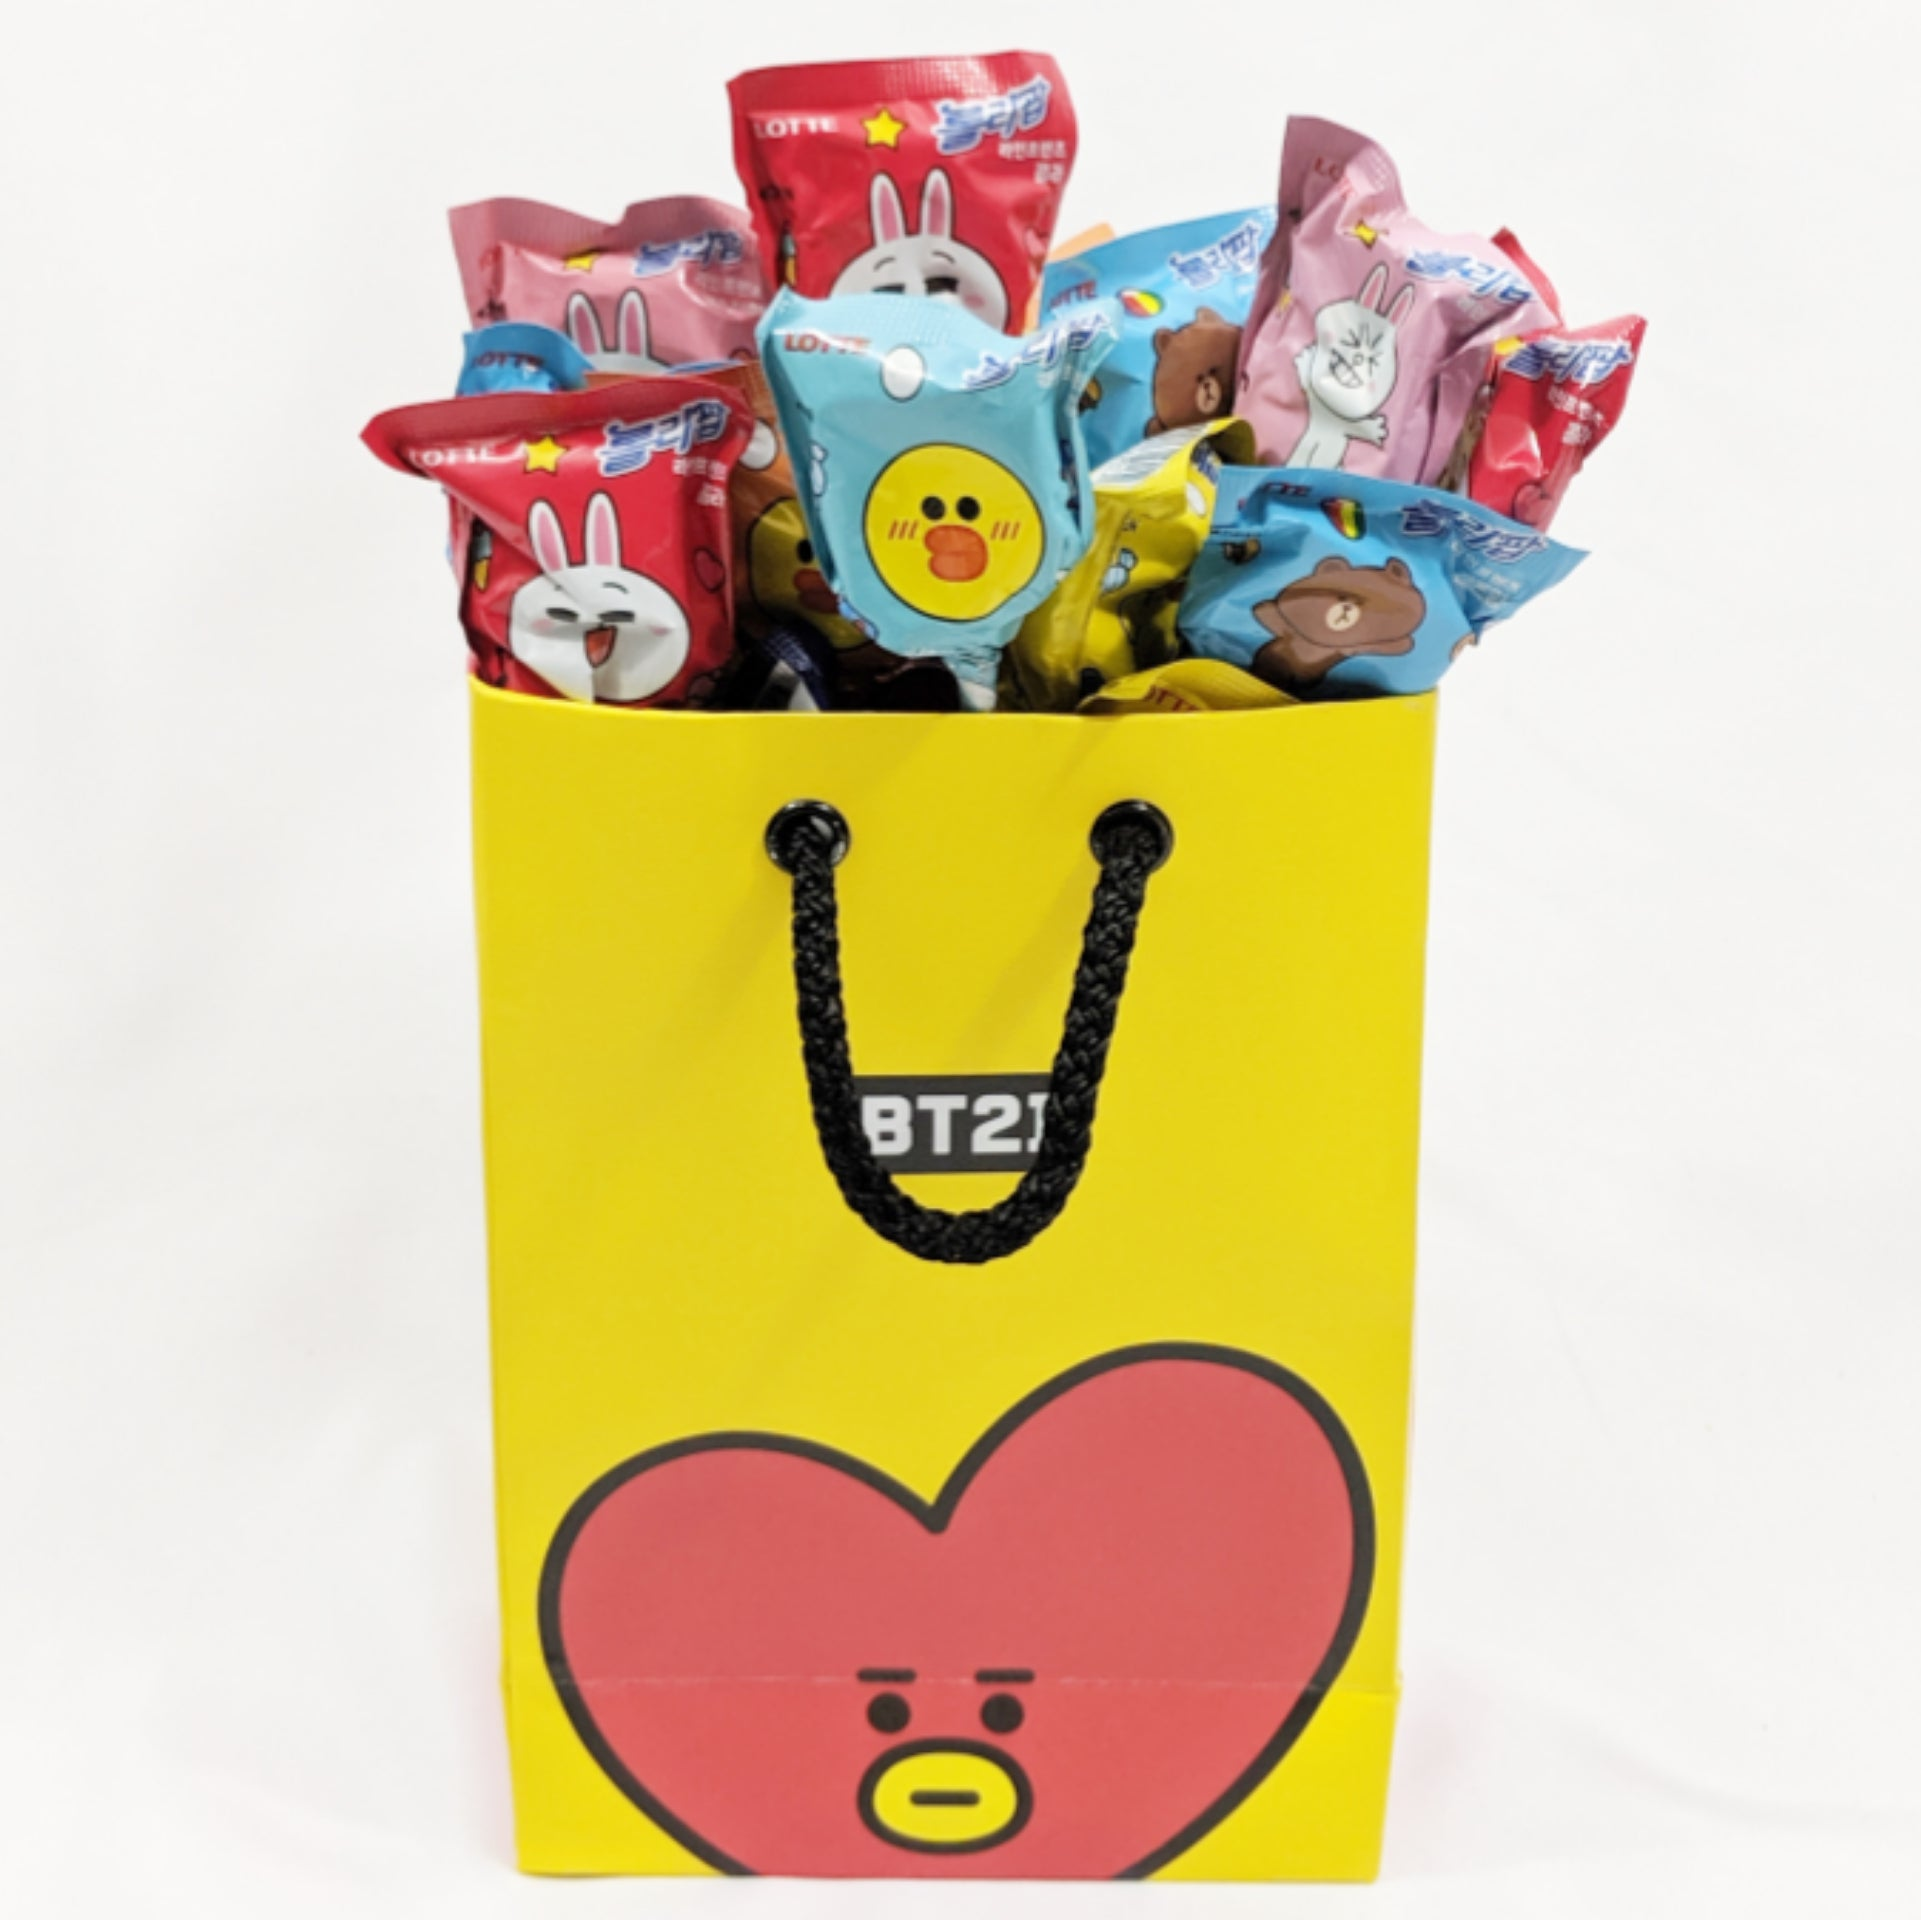 official bt21 shopping bag tata version with lienfriends lollipop